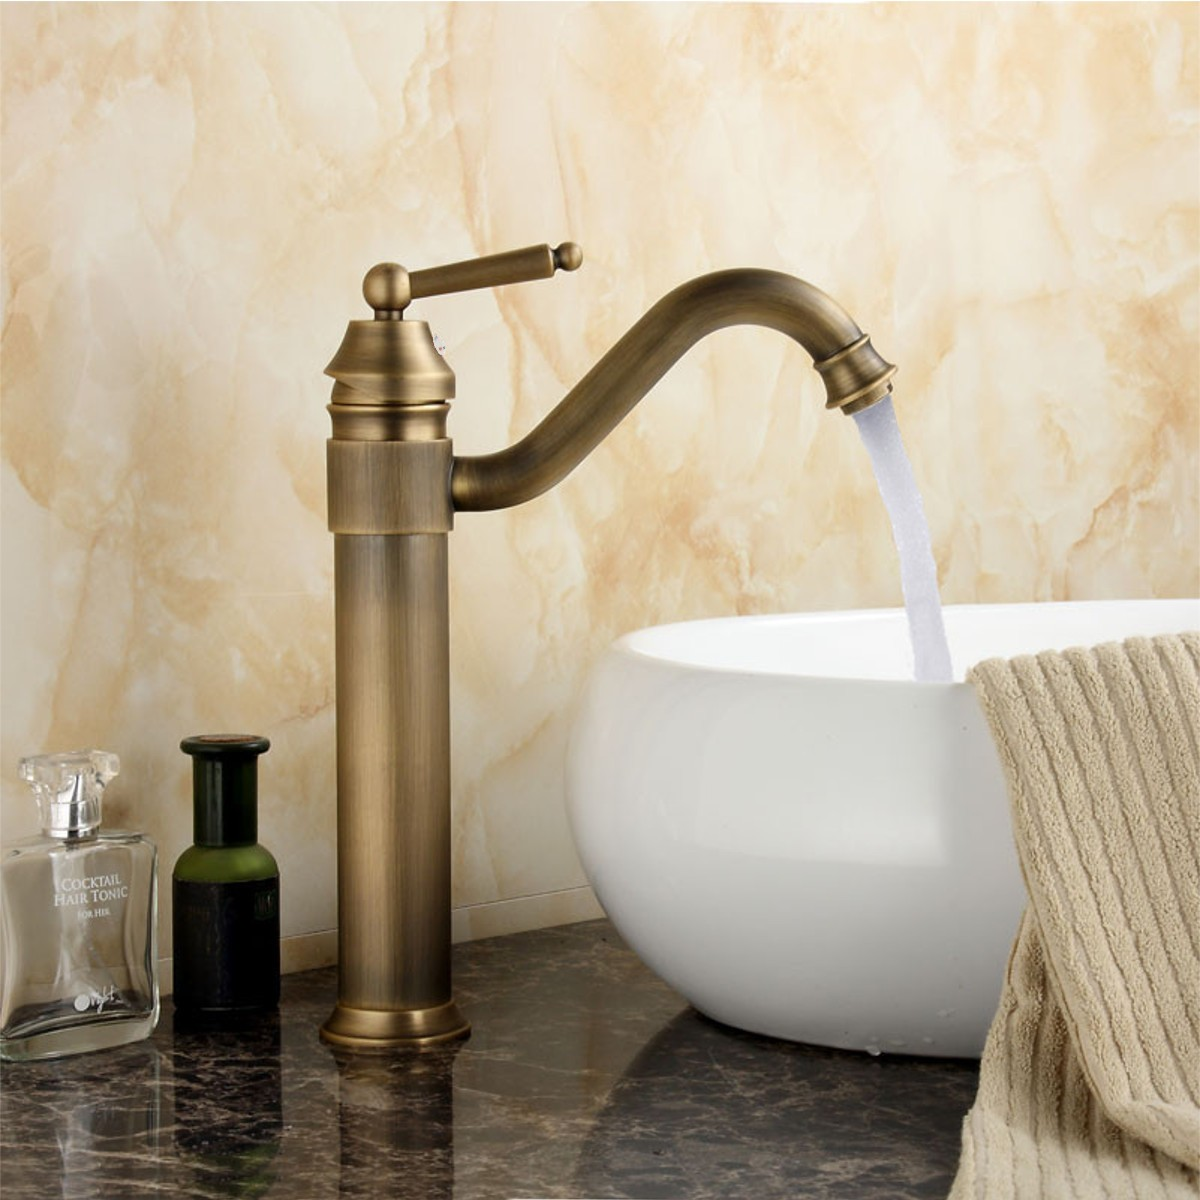 Antique Copper 360Rotatable Basin Sink Faucet Bathroom Cold And Hot Water Mixer Tap Single Handle Deck